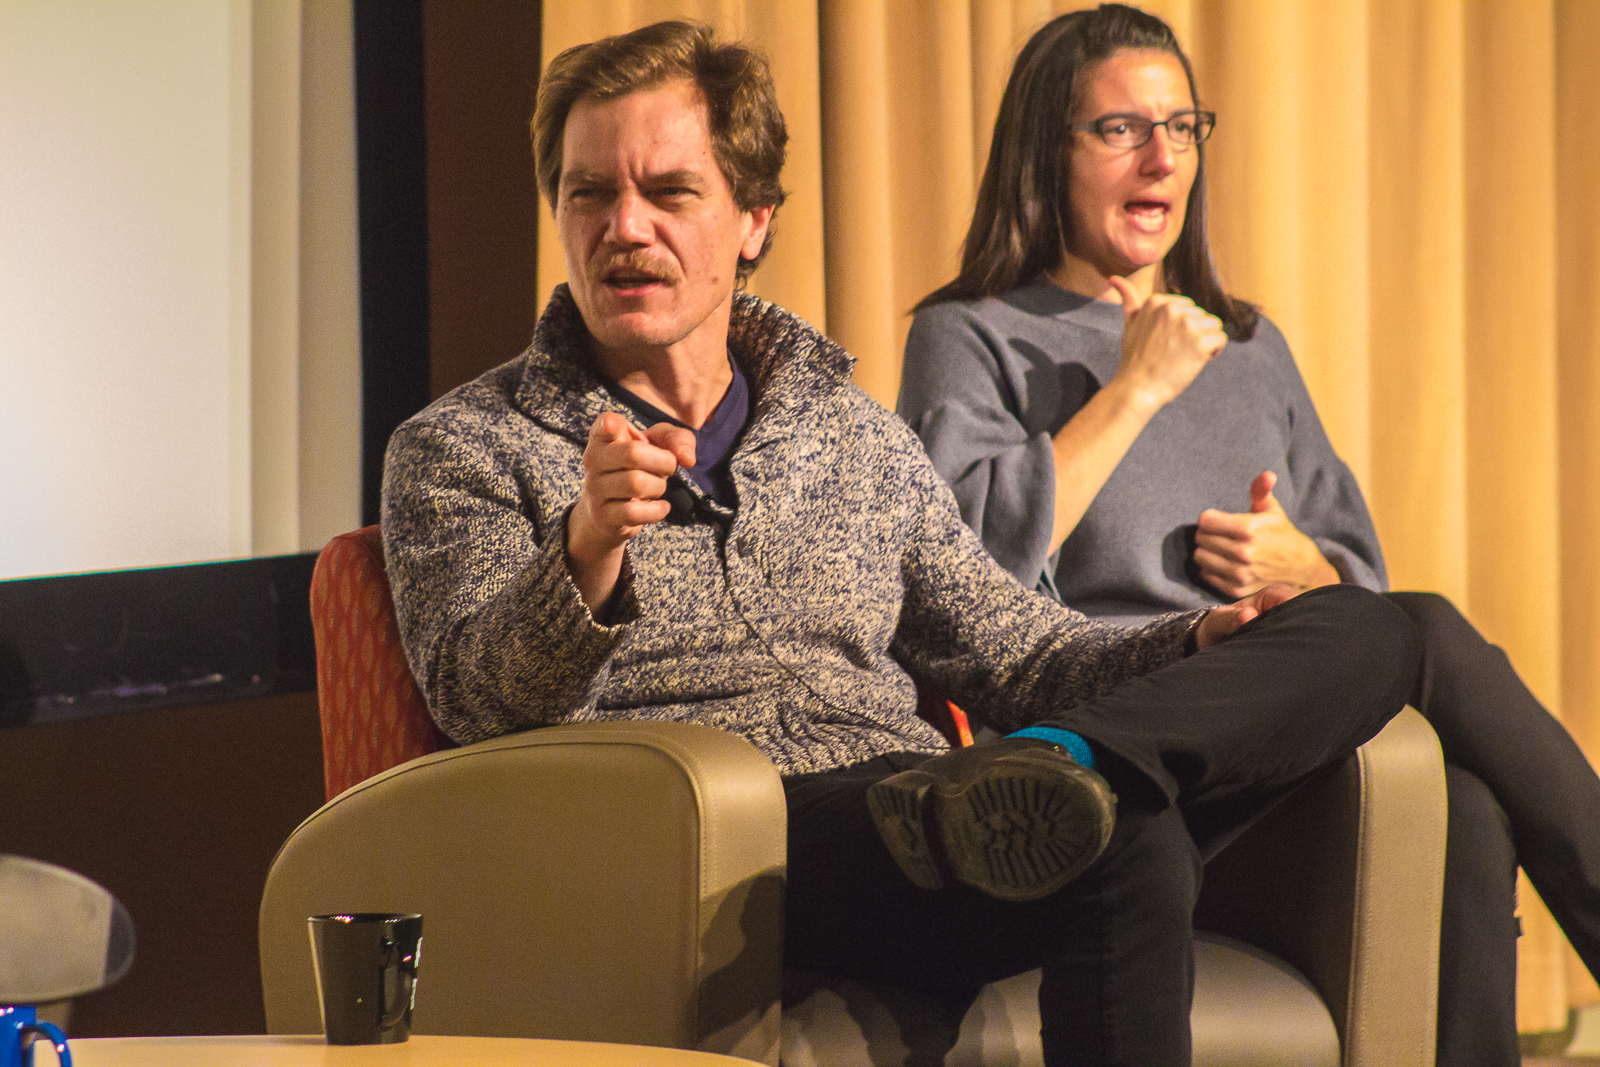 Michael Shannon speaks to DePaul students on Monday, Jan. 28 in the Student Center. (Jesus J. Montero, 14 East)